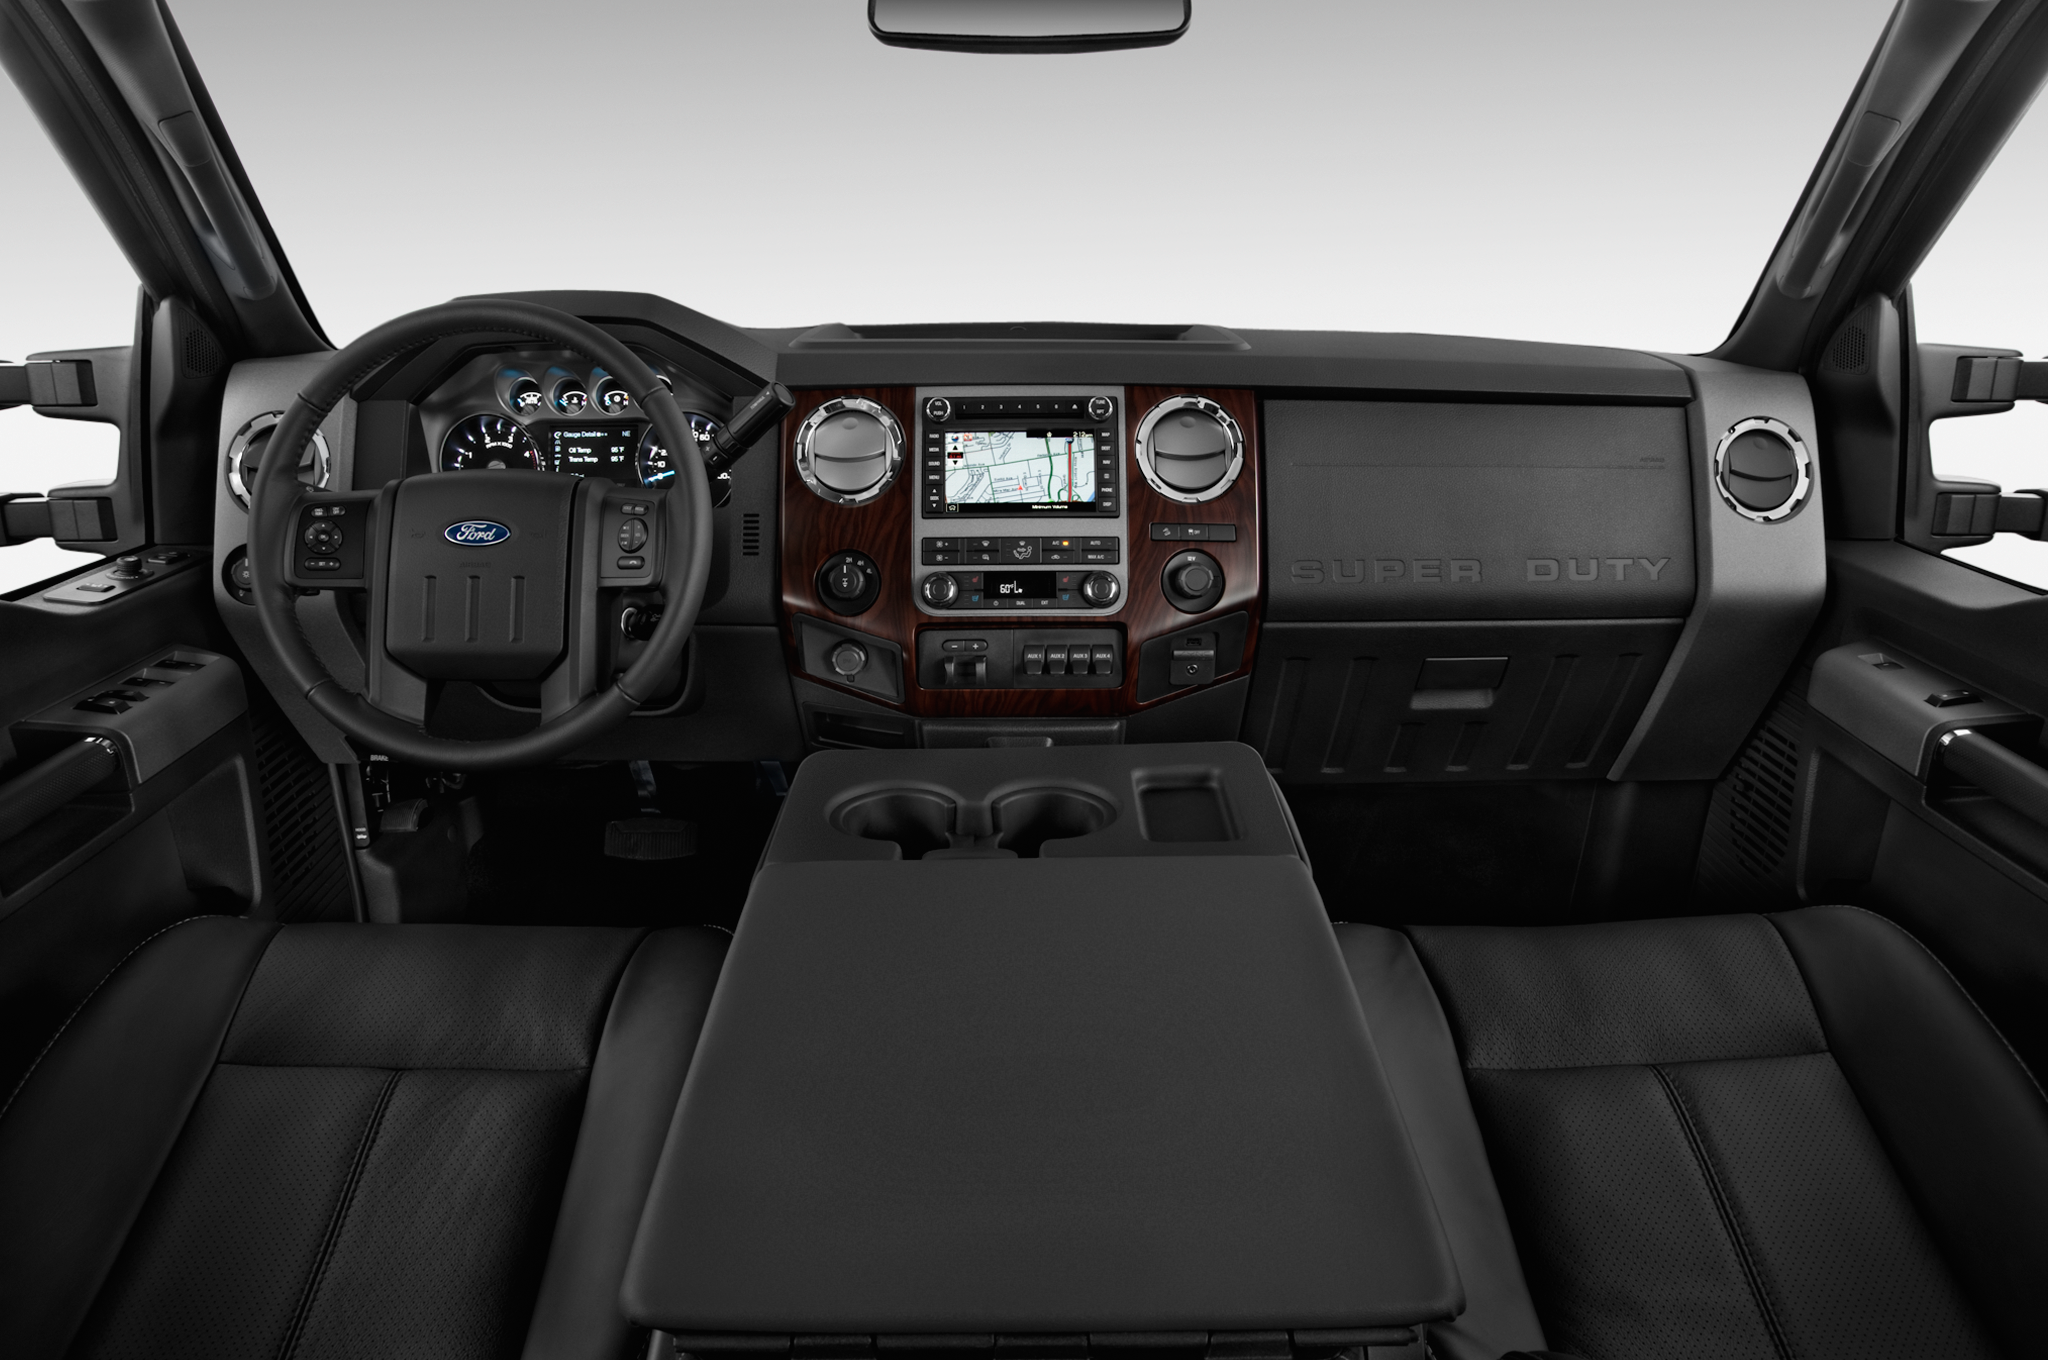 Chassis Changes Revisions Help 2011 Ford Super Duty Earn